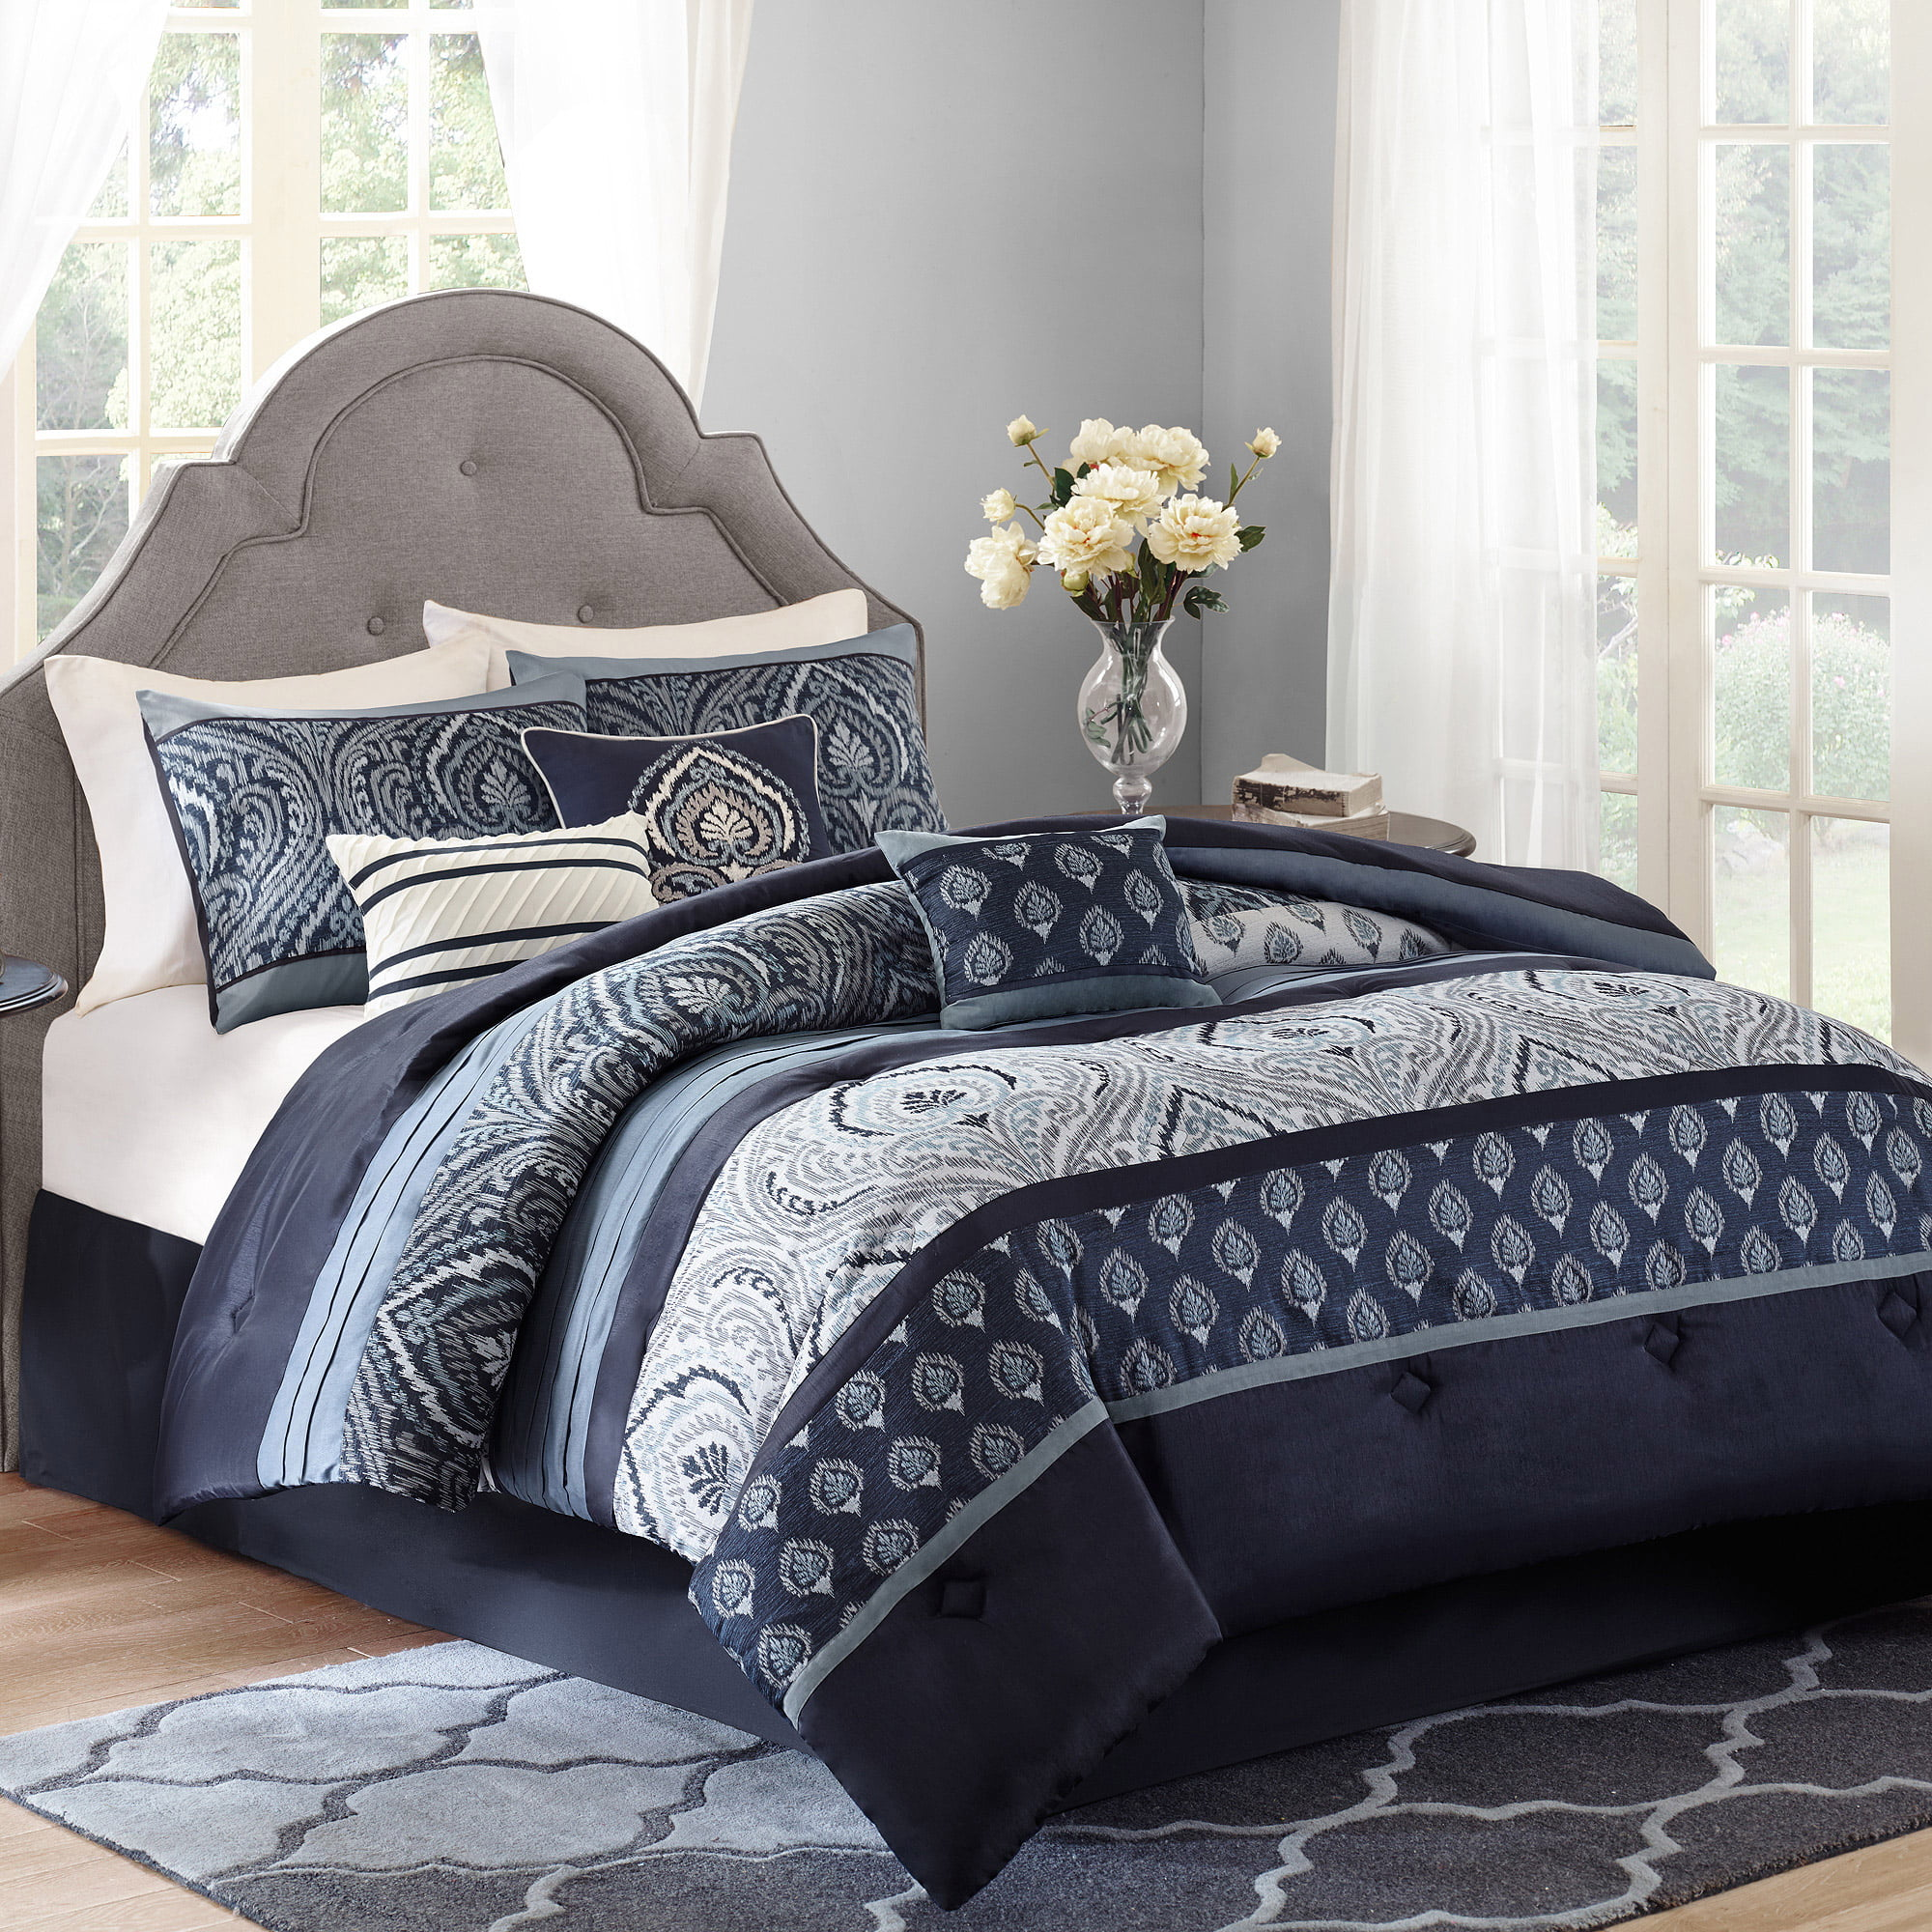 Delicieux Better Homes And Gardens Indigo Paisley 7 Piece Comforter Set